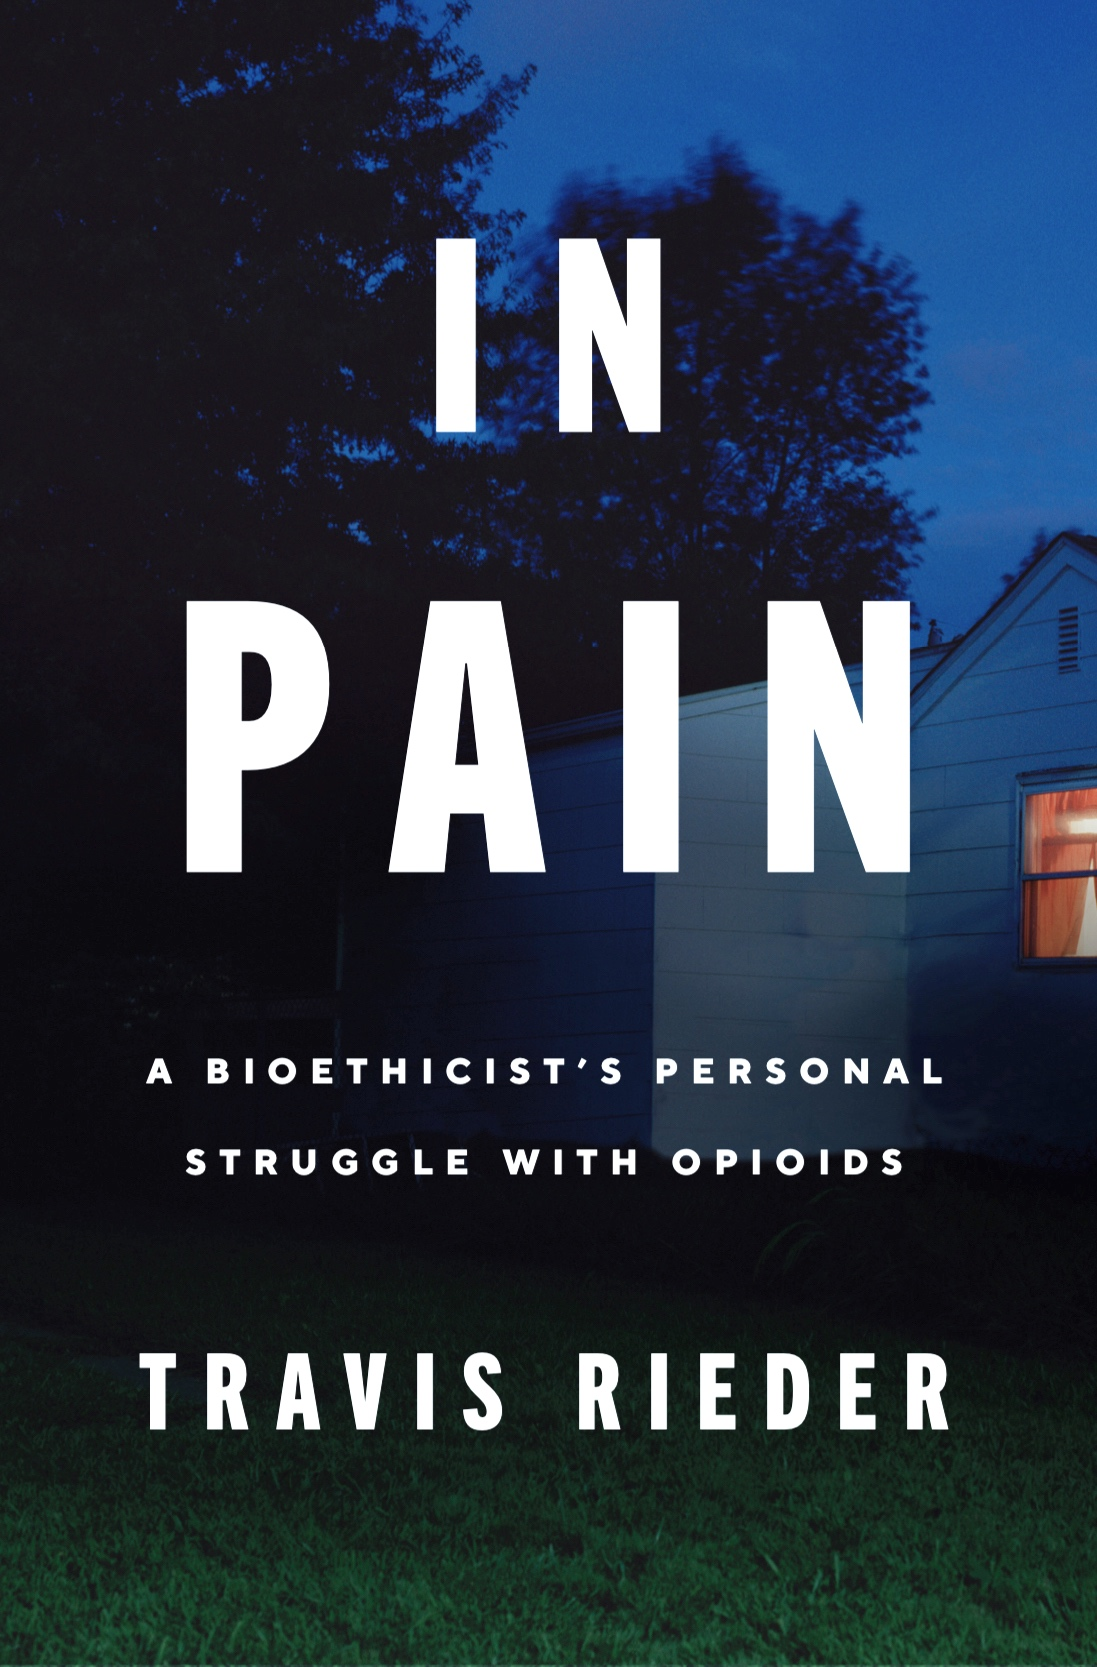 IN PAIN - In Pain: A Bioethicist's Personal Struggle with Opioids is now available.